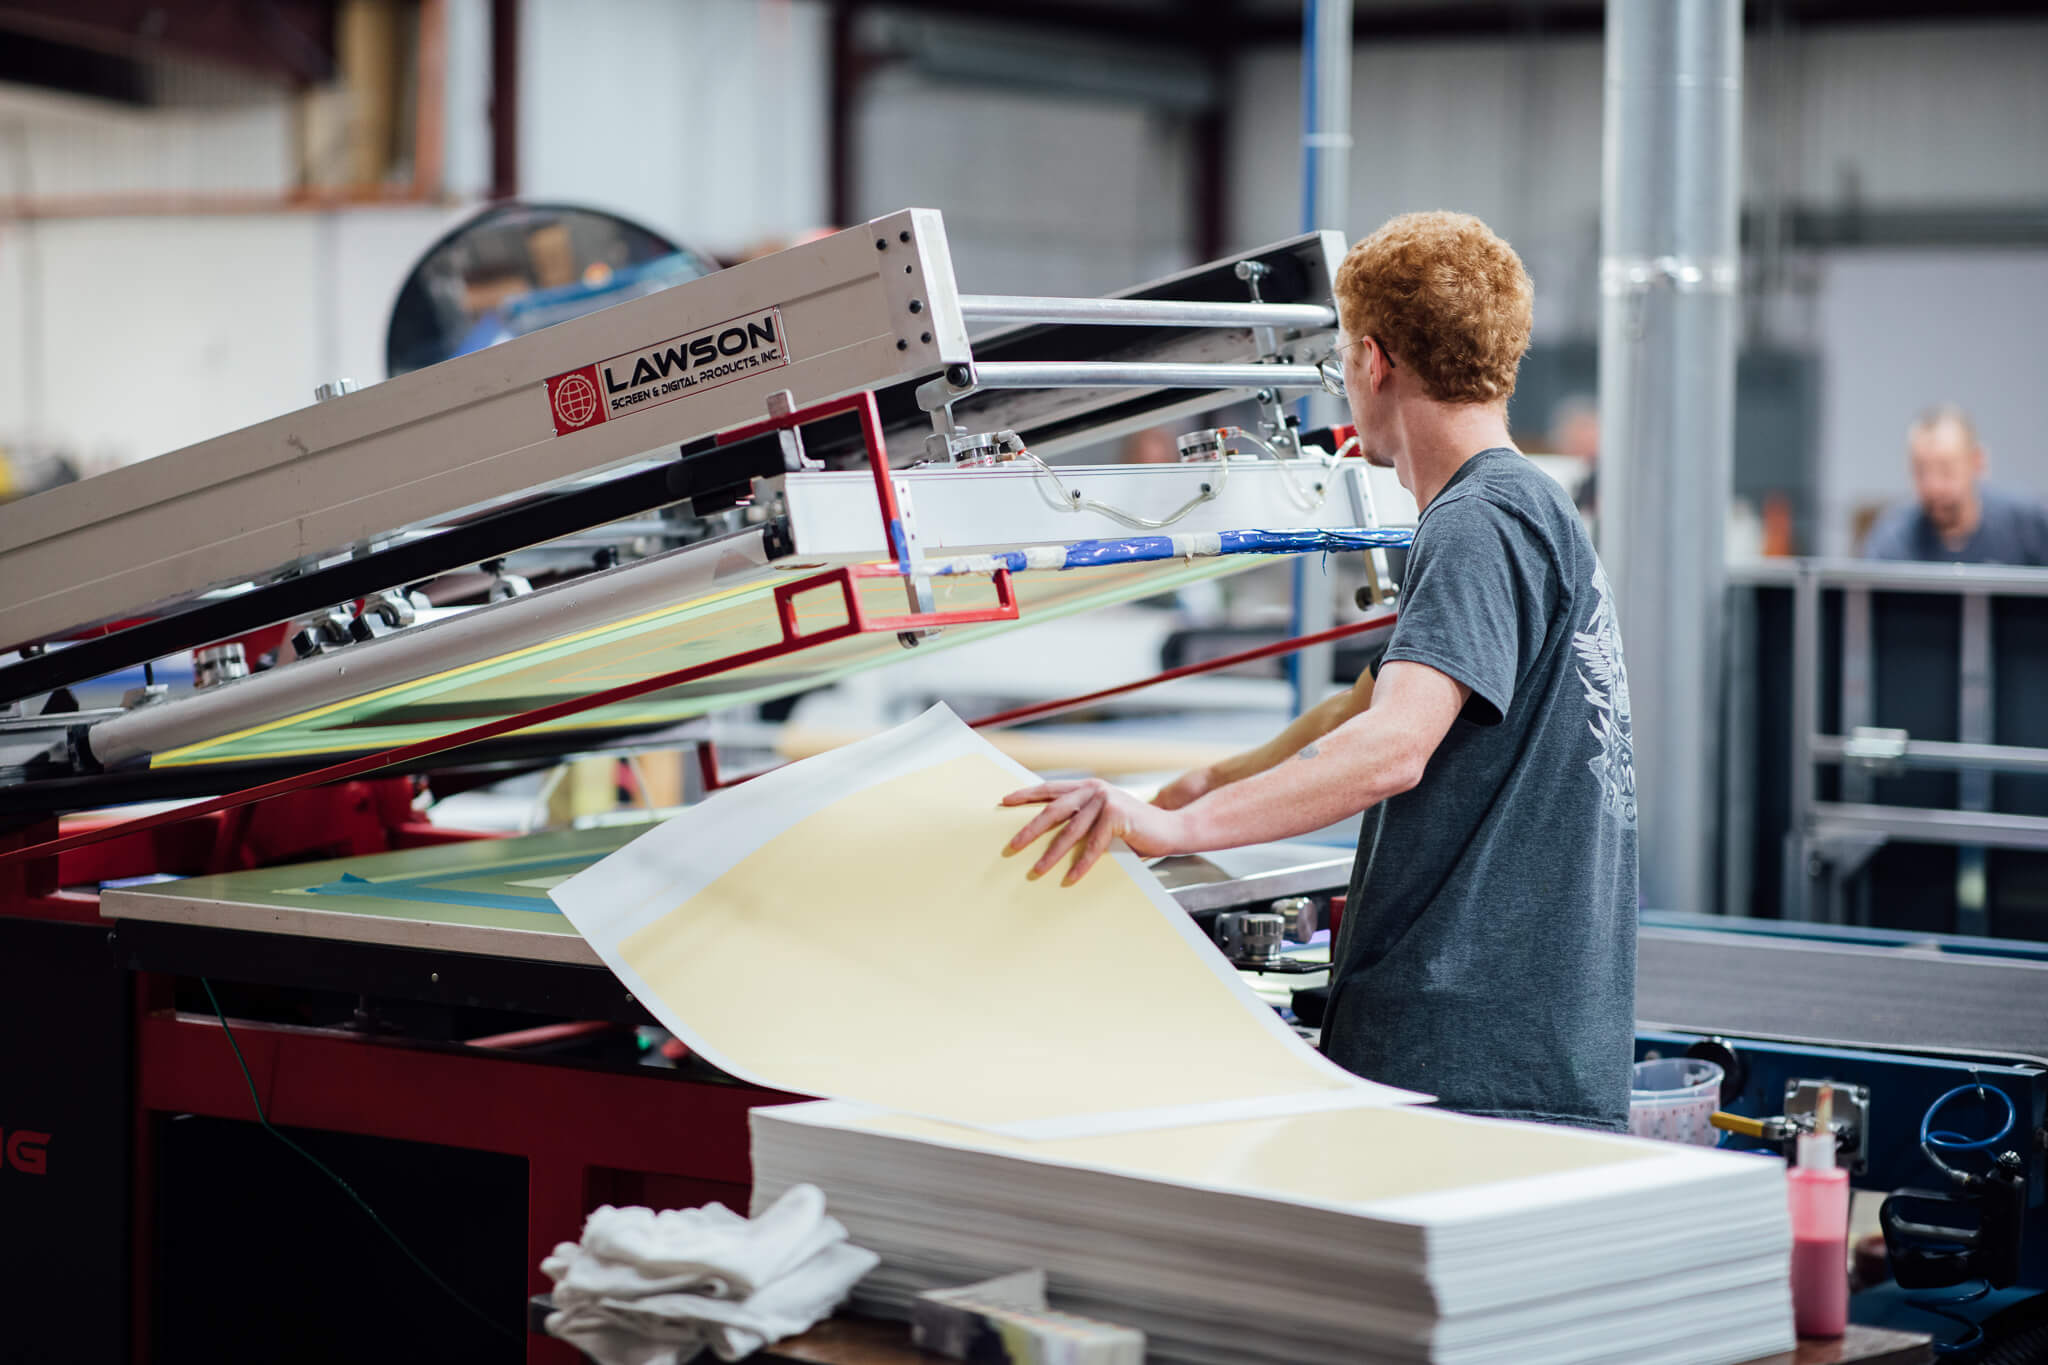 A GoD ecals worker places a vinyl sheet onto a screen printing machine.